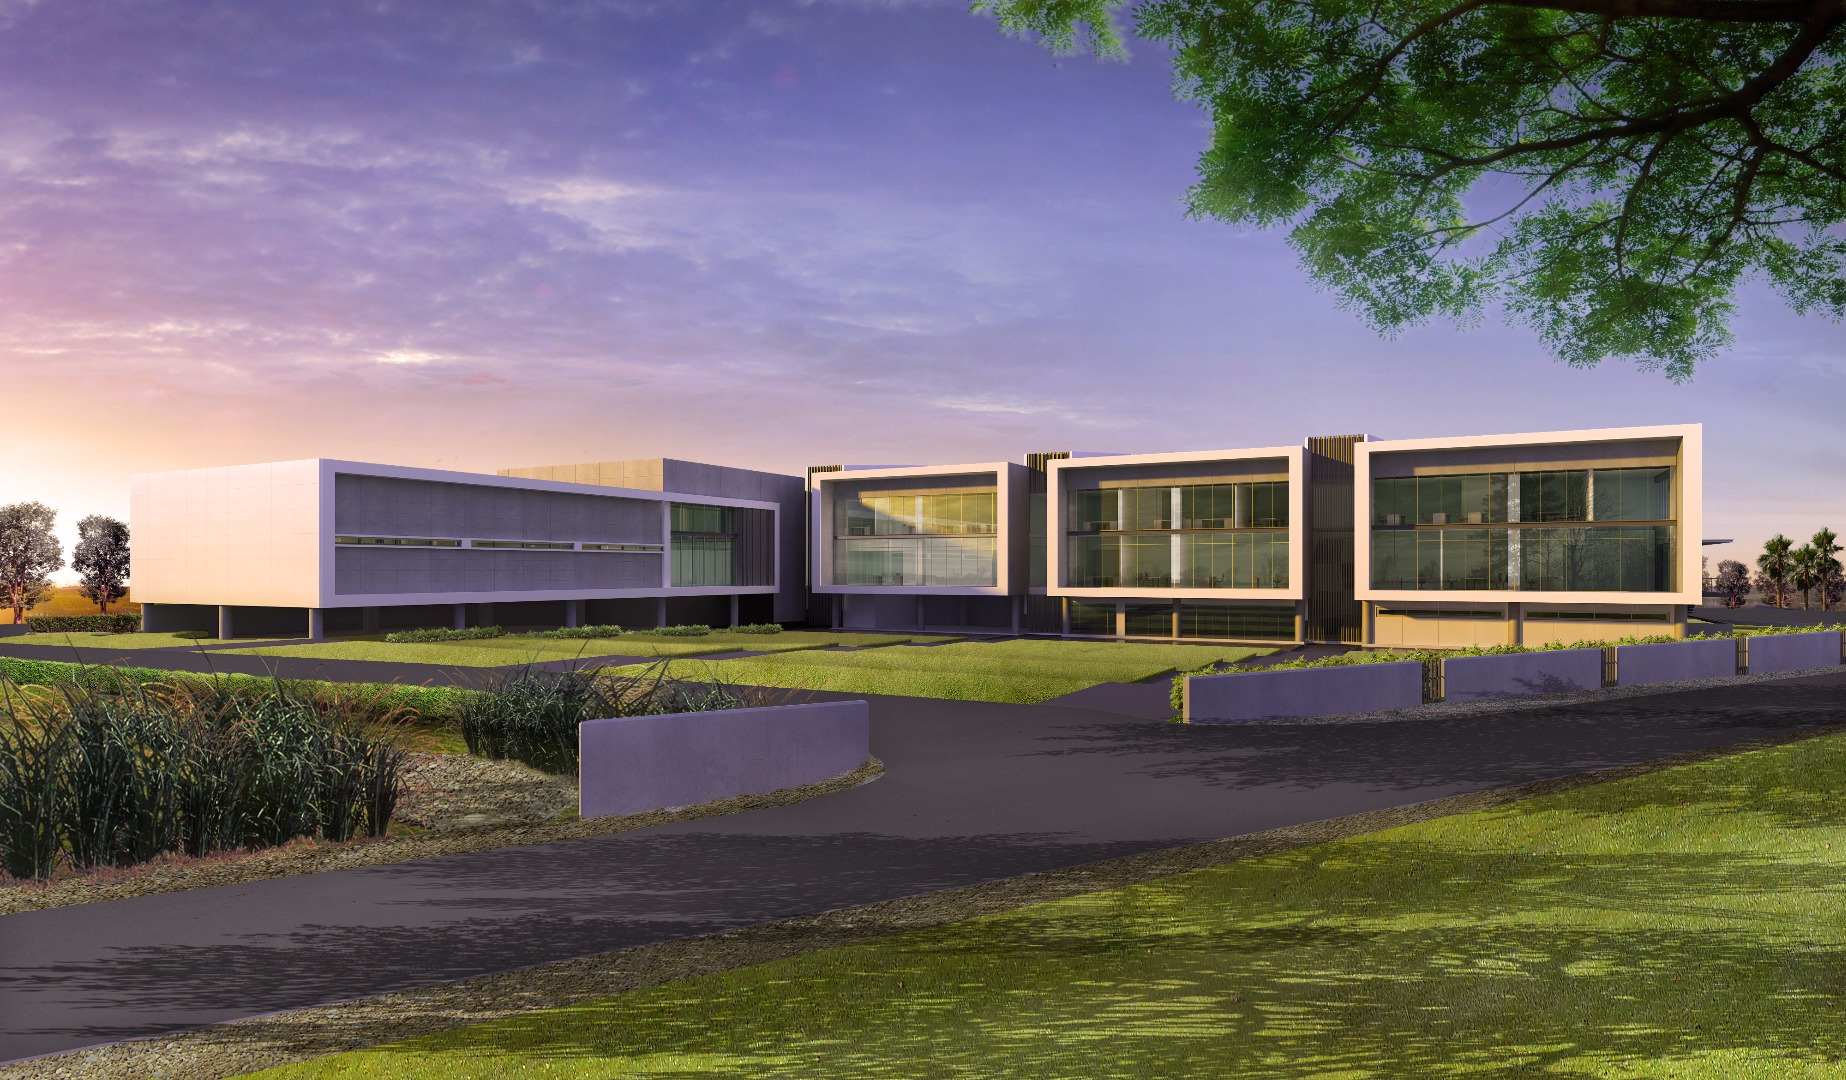 The new building for Contract Manufacturing Services